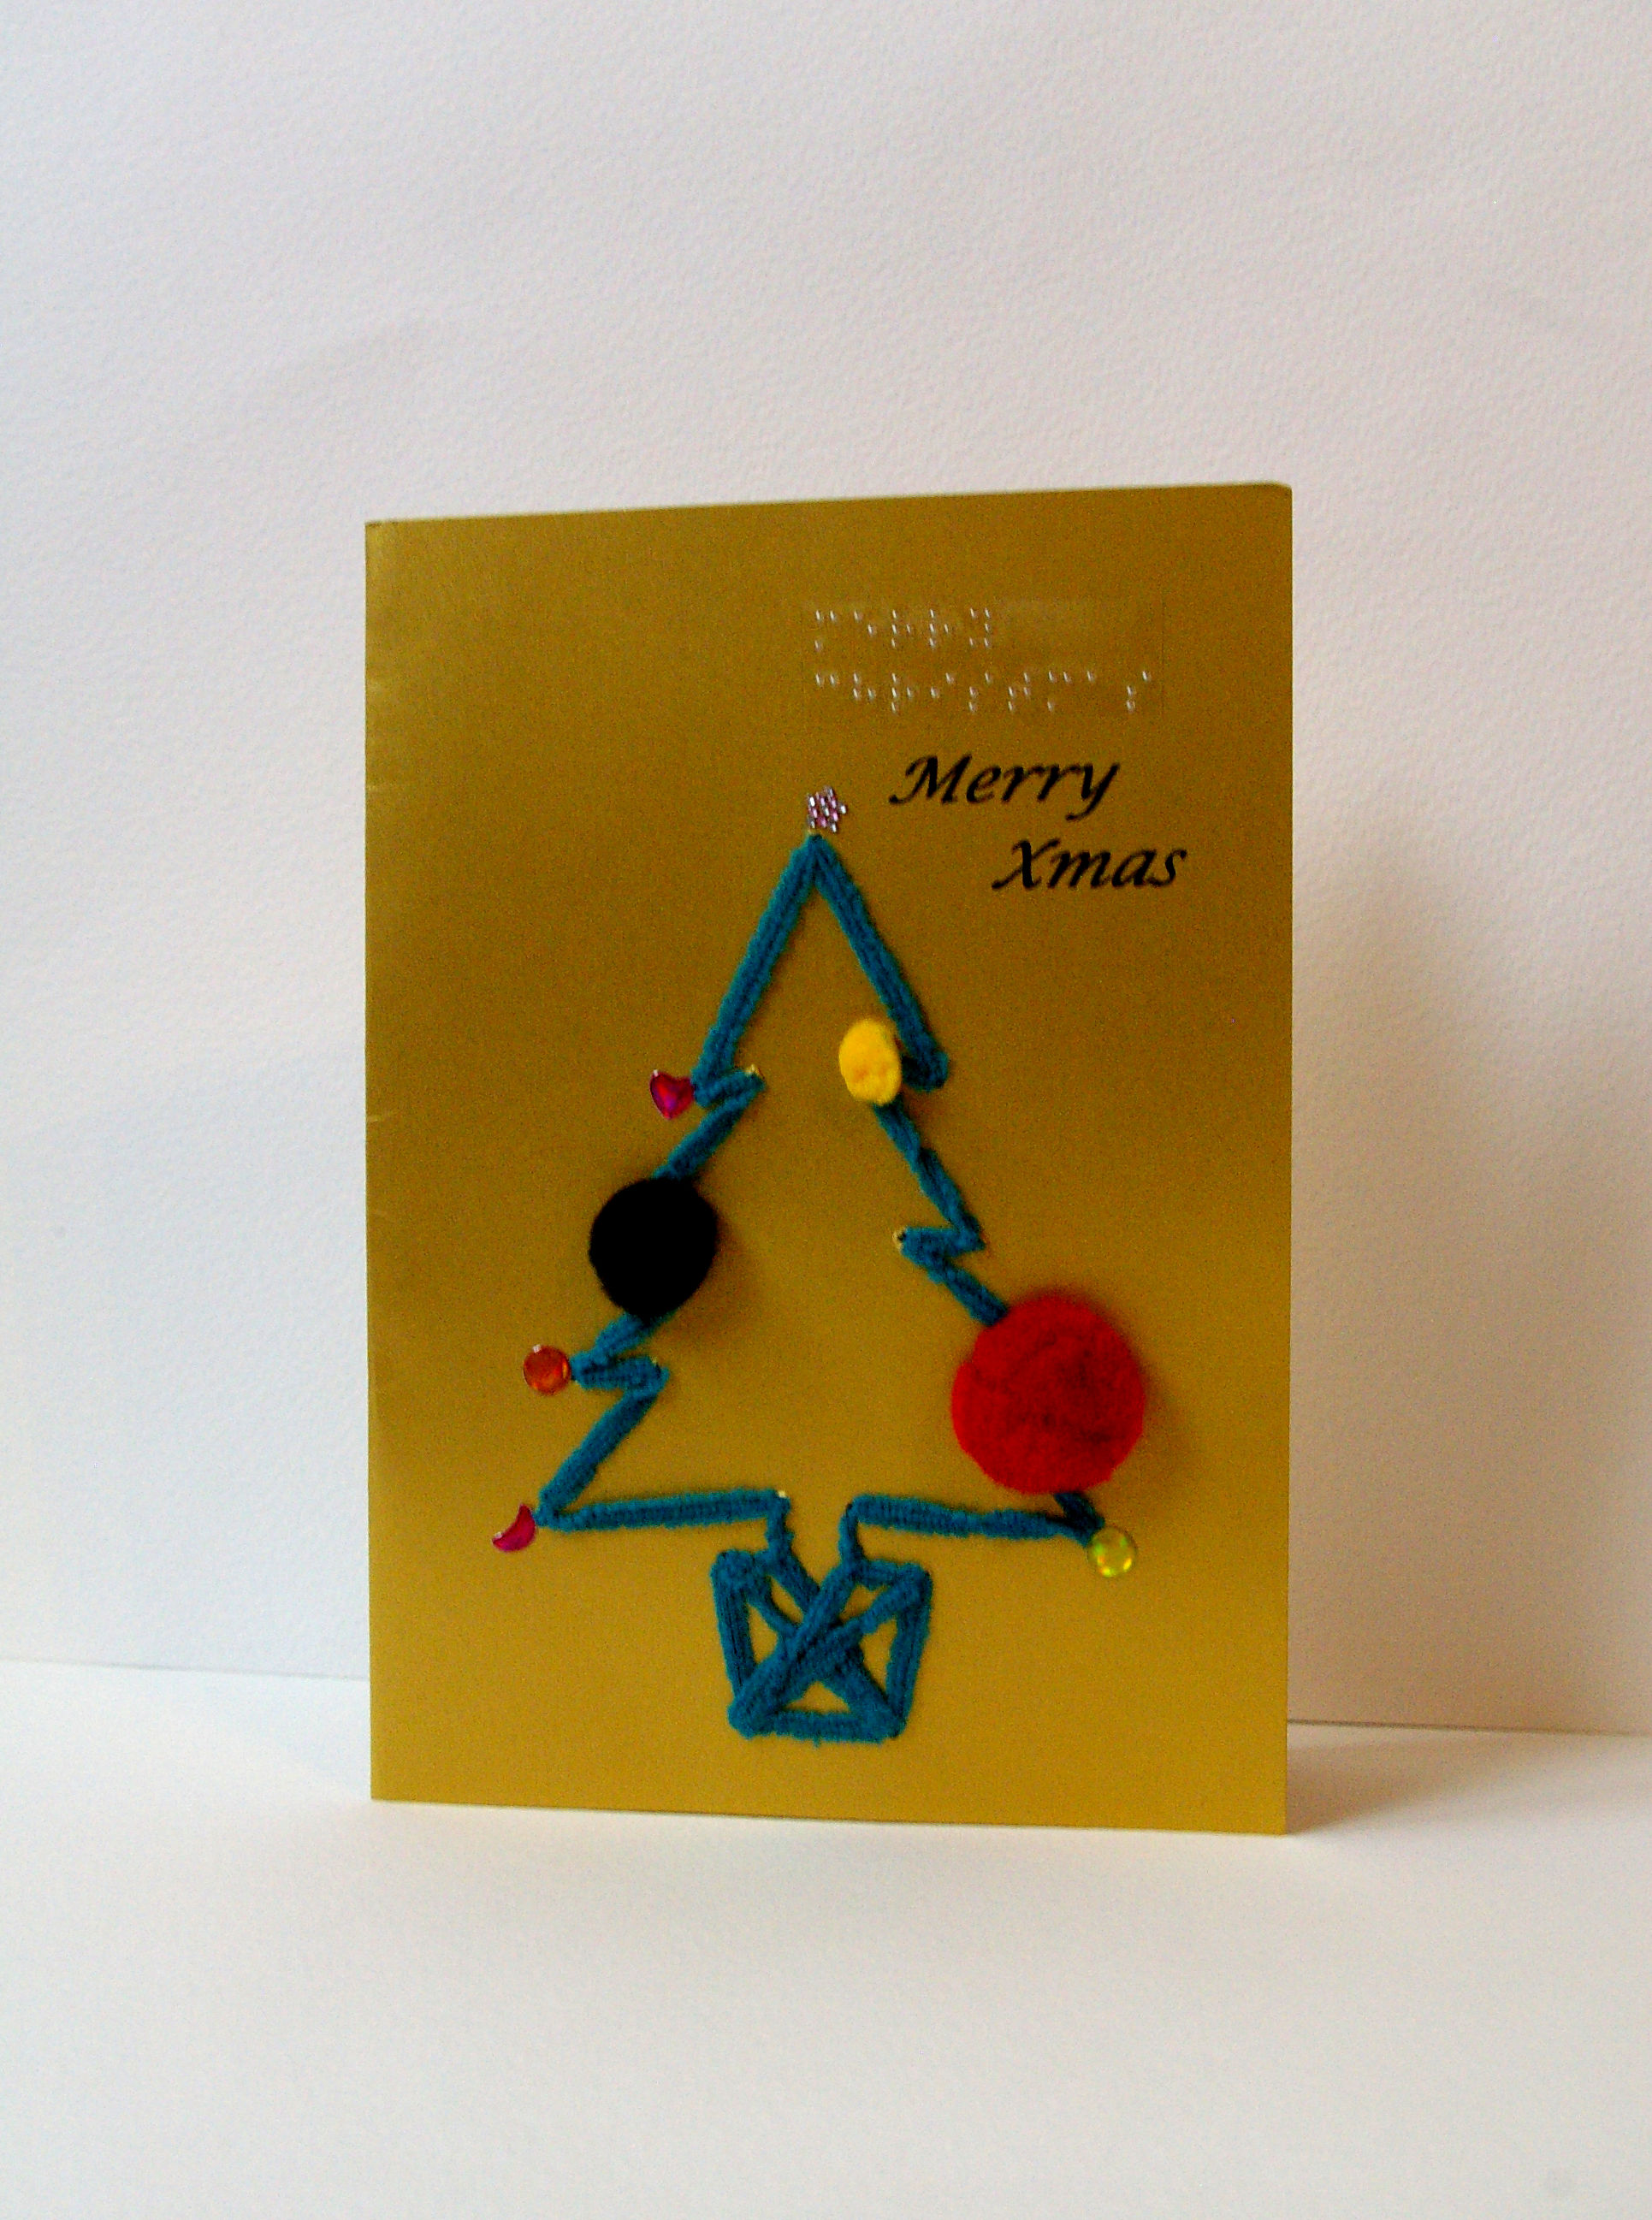 fluffy green Christmas tree in pot with pom pom decorations on gold card